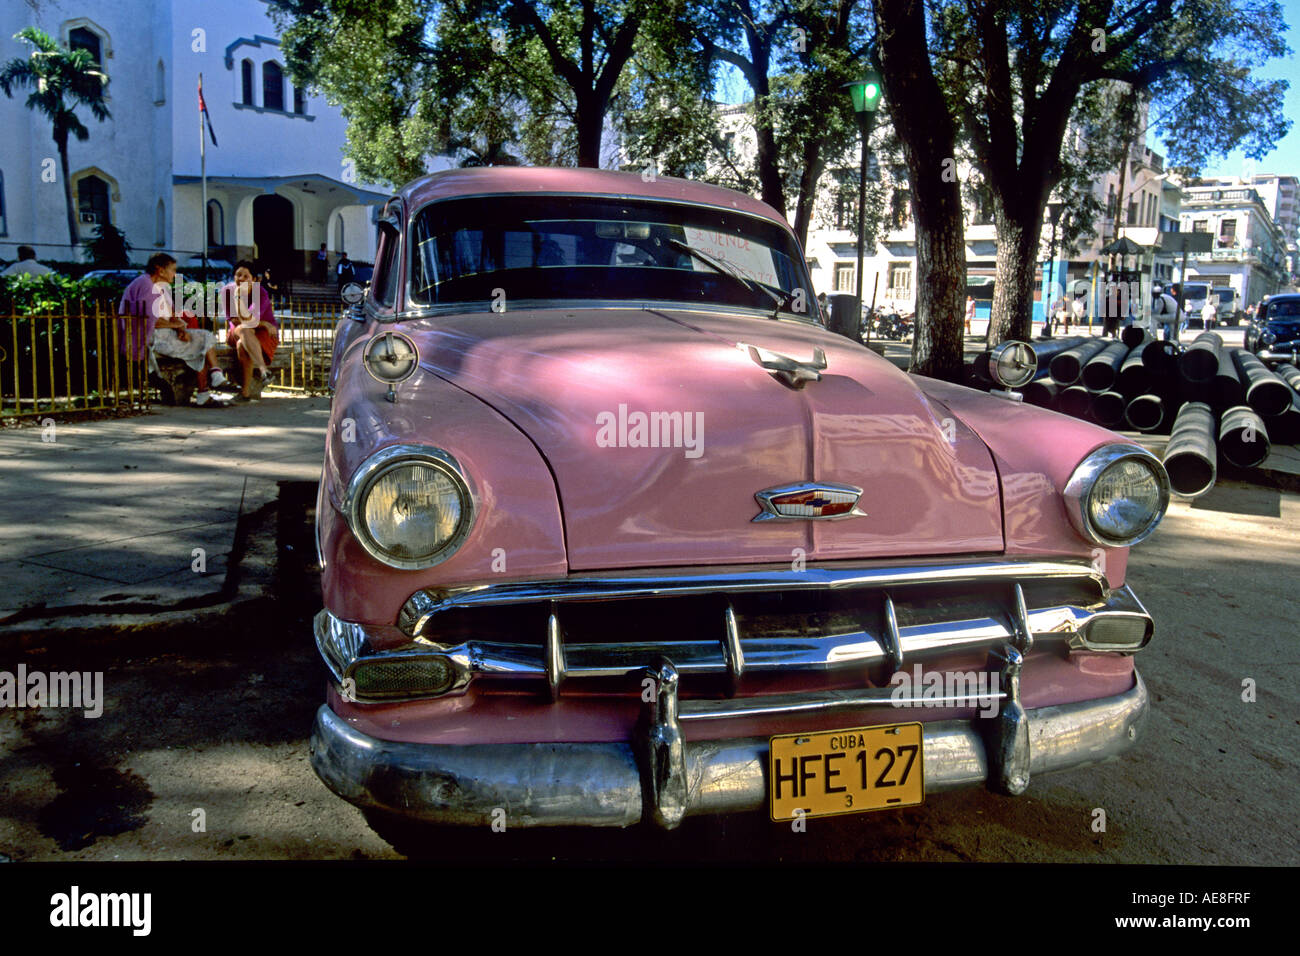 Old American car for sale Havana Cuba Stock Photo: 7773118 - Alamy